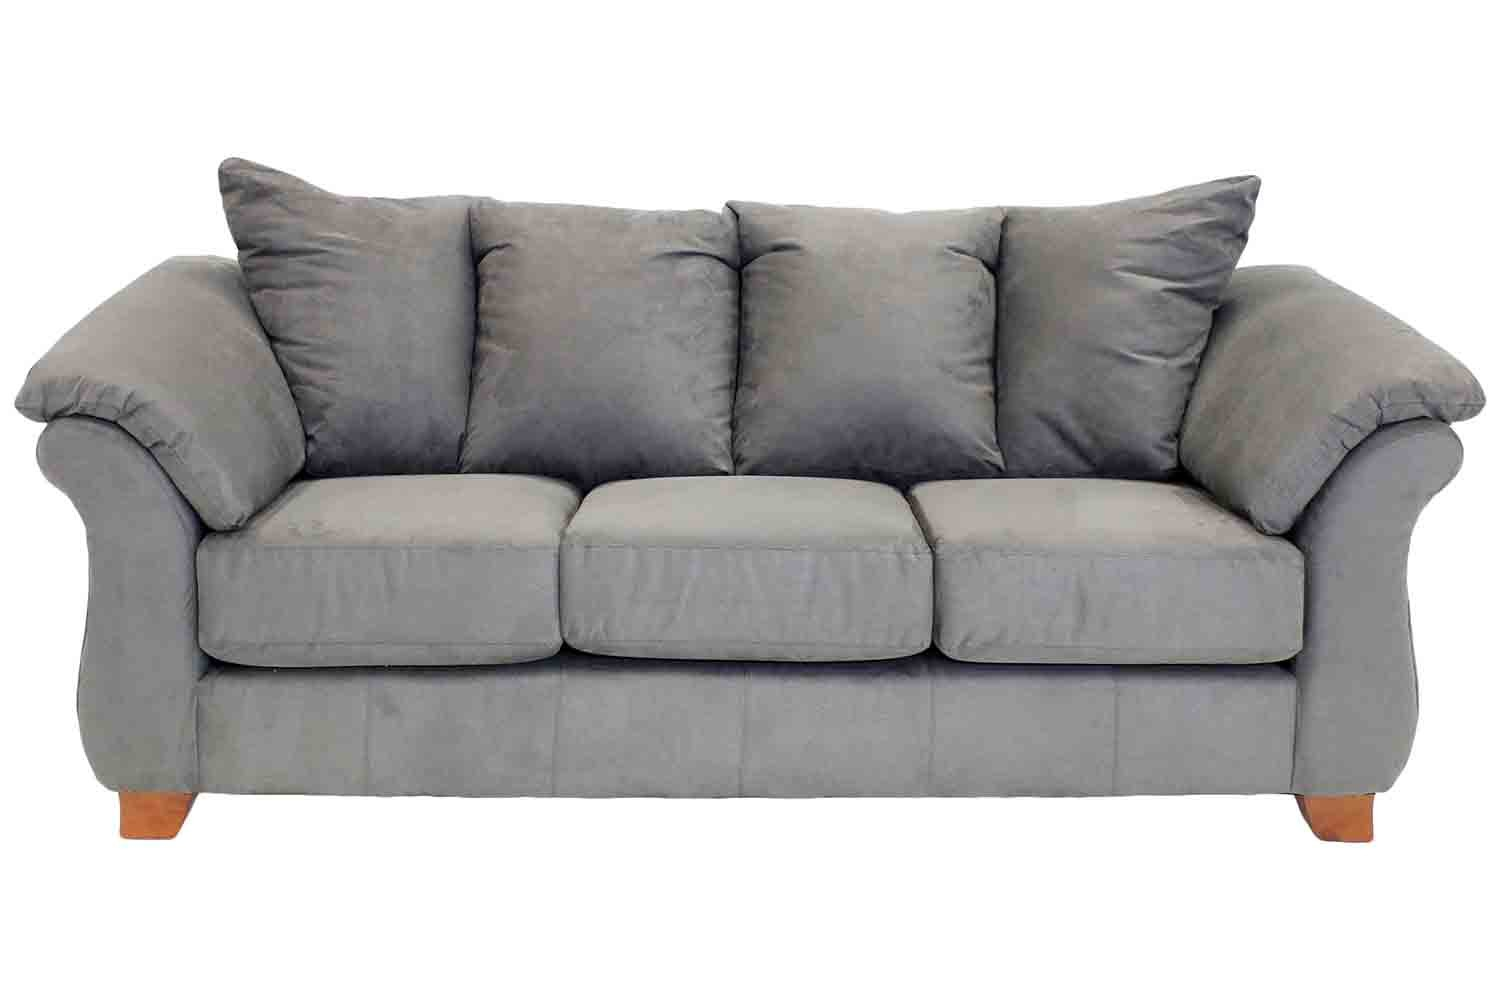 Shasta charcoal sofa mor furniture for less for Charcoal sofa